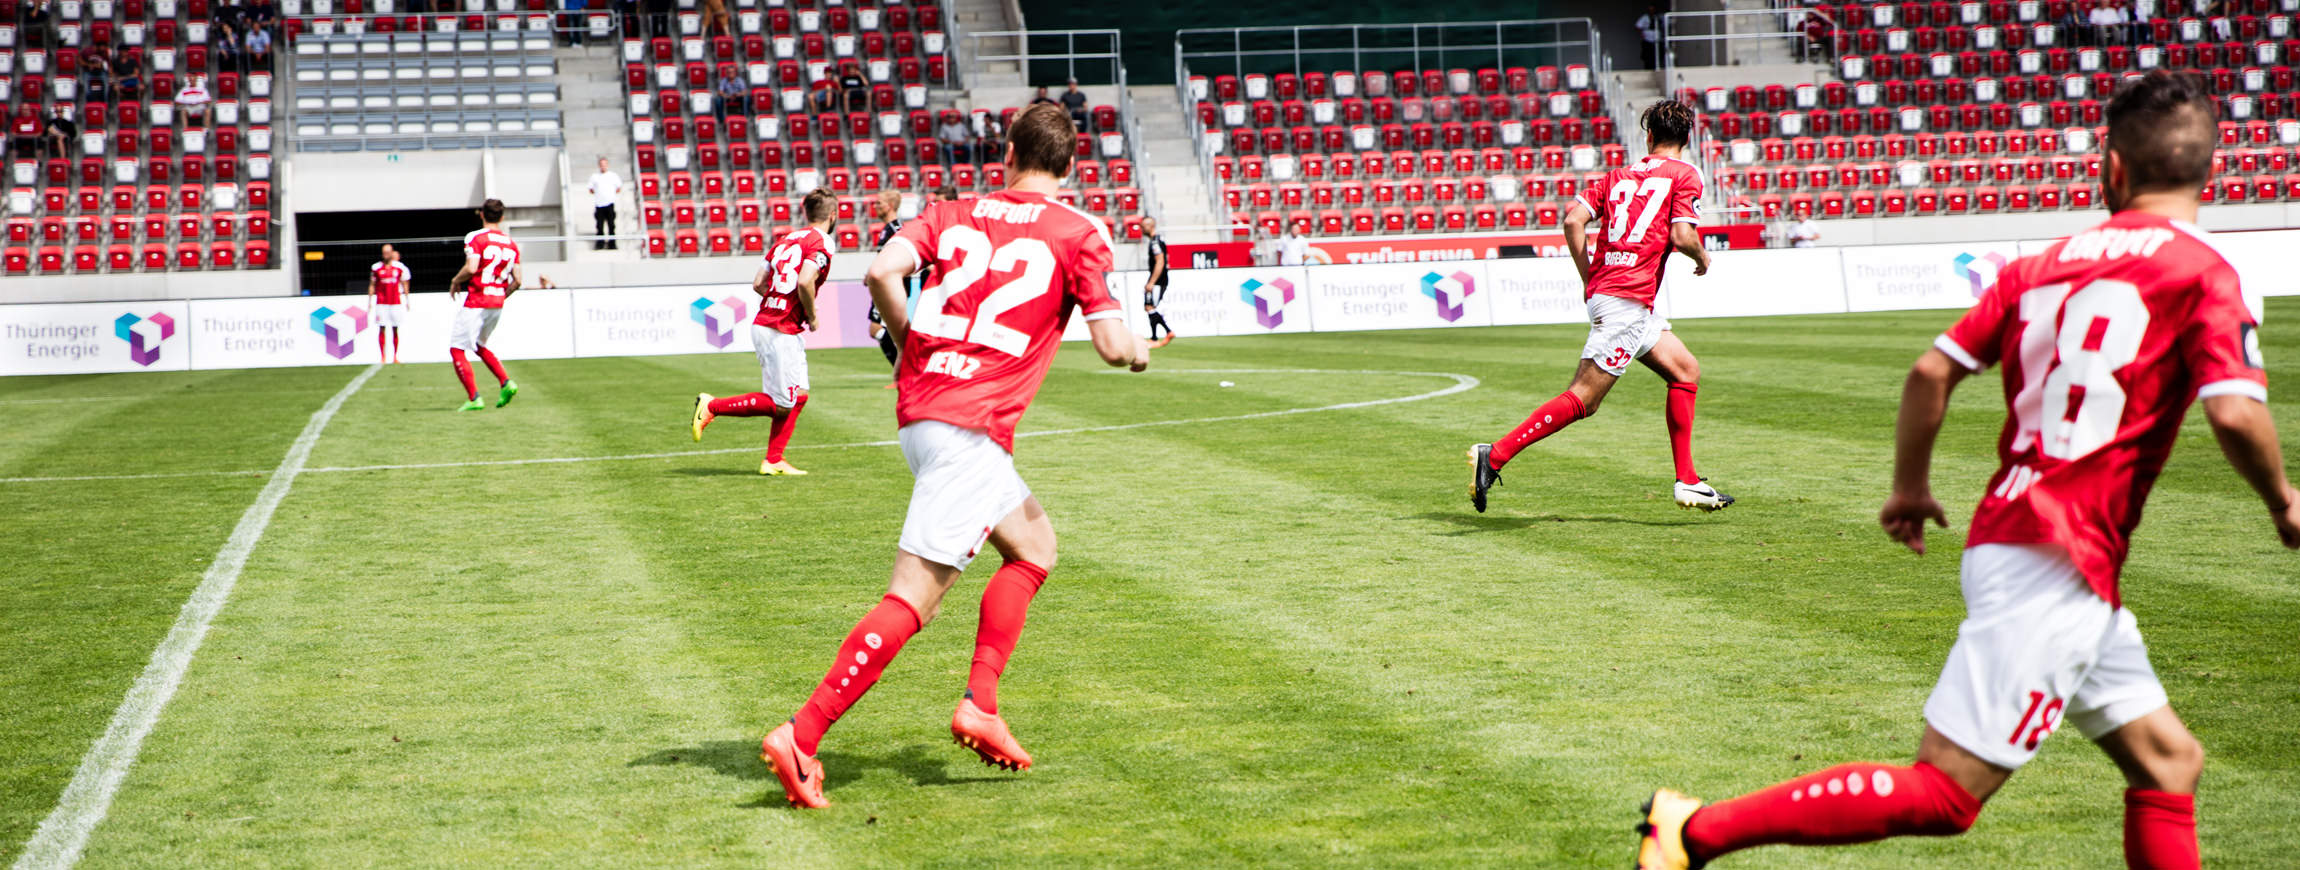 Header-Fussball-IMG1